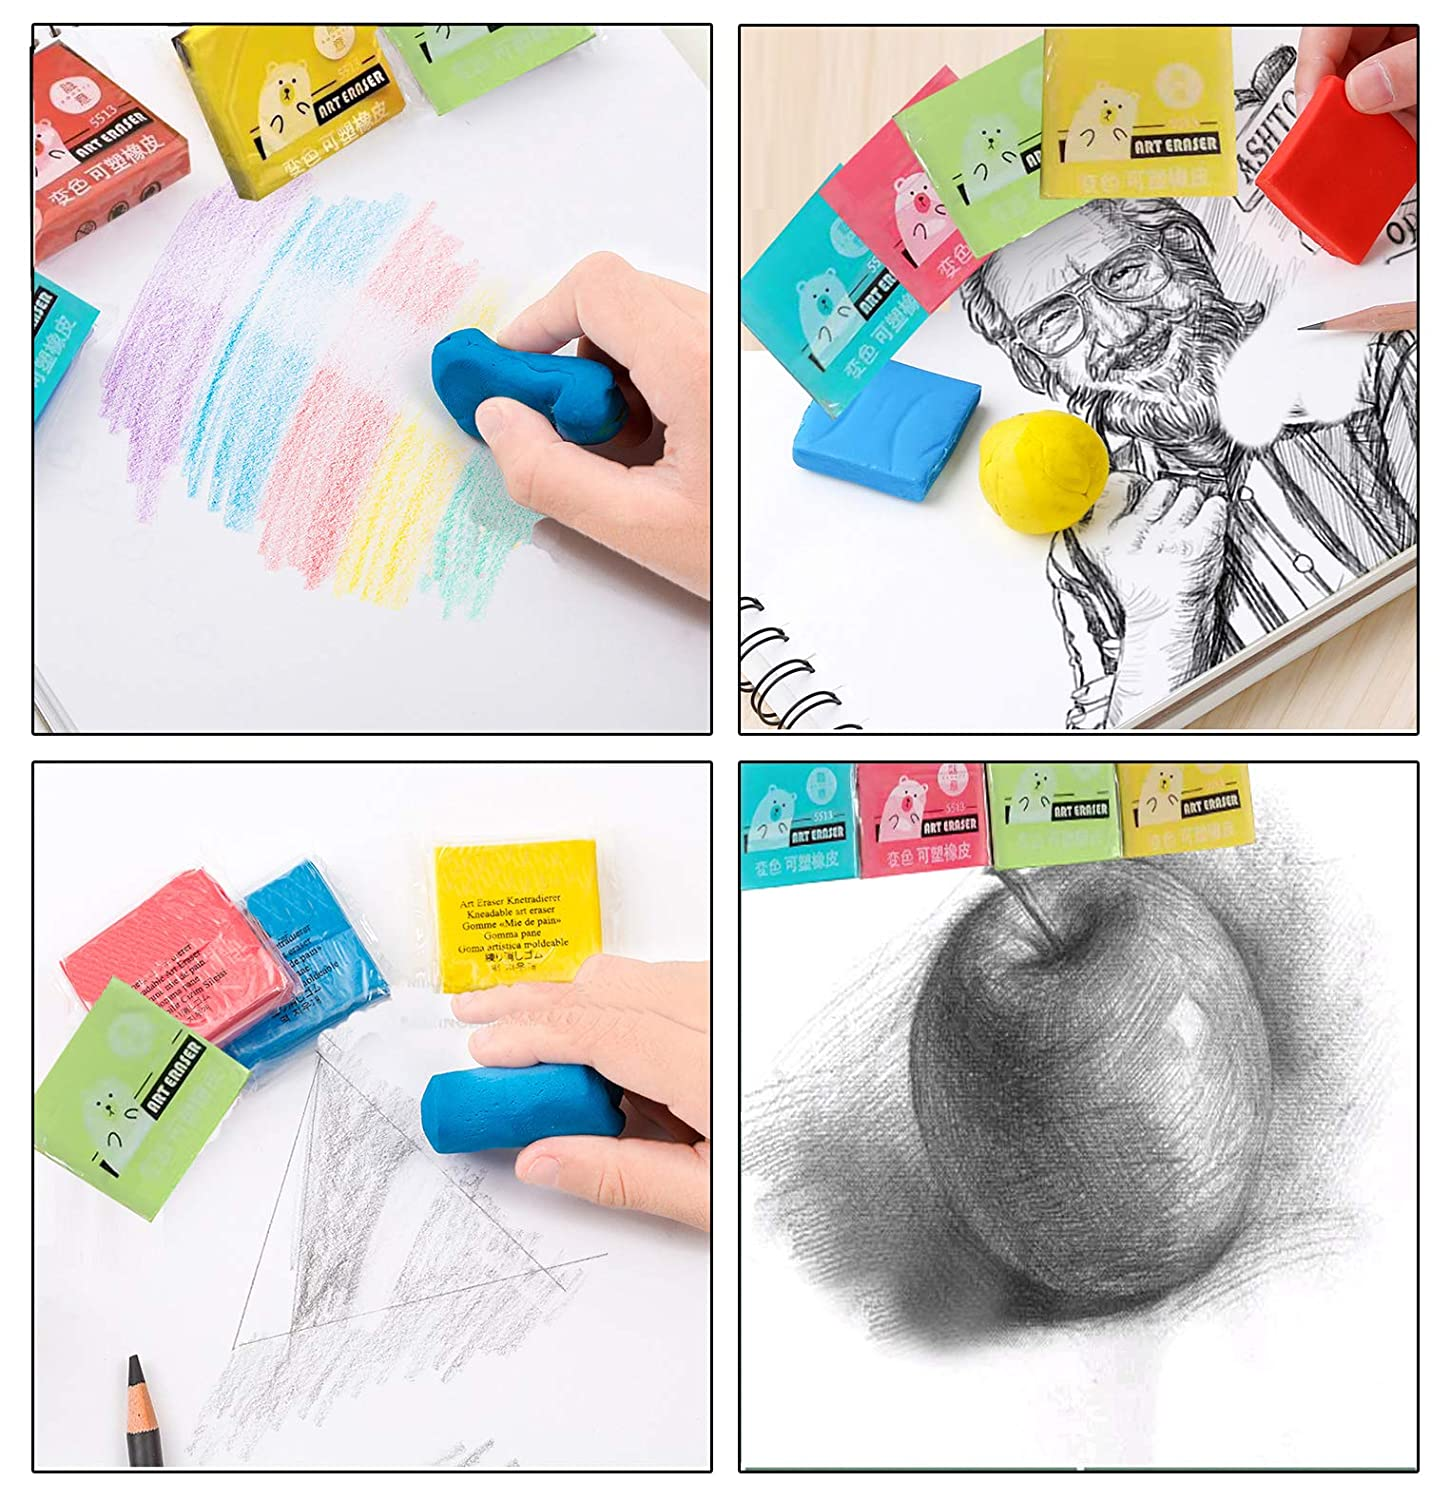 Erasers,Kneaded Rubber Eraser,Reusable and Non-Drying,12 Pack Large Size,Multiple Colour